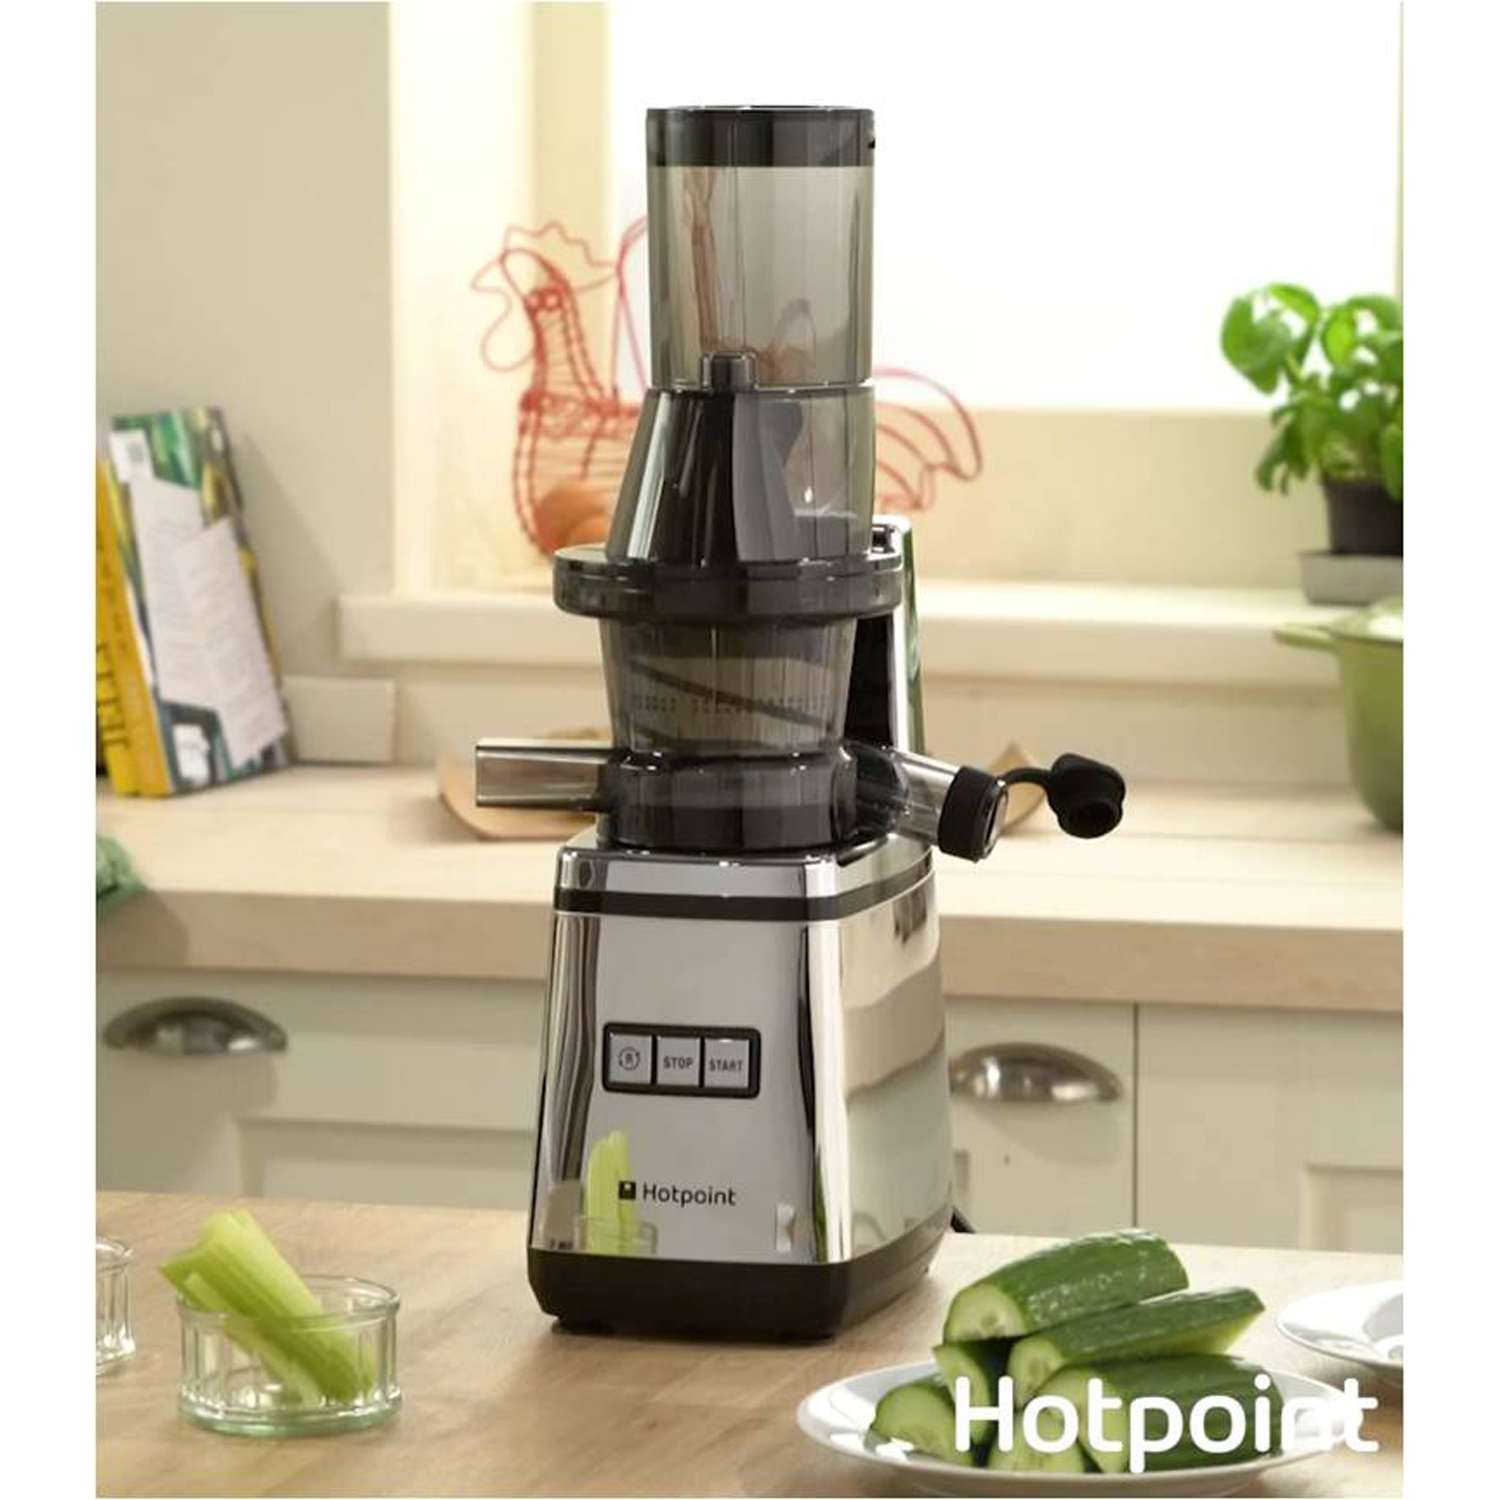 Hotpoint Ariston Slow Juicer Ricettario : Hotpoint SJ15XLUP0UK Slow Juicer in Silver eBay